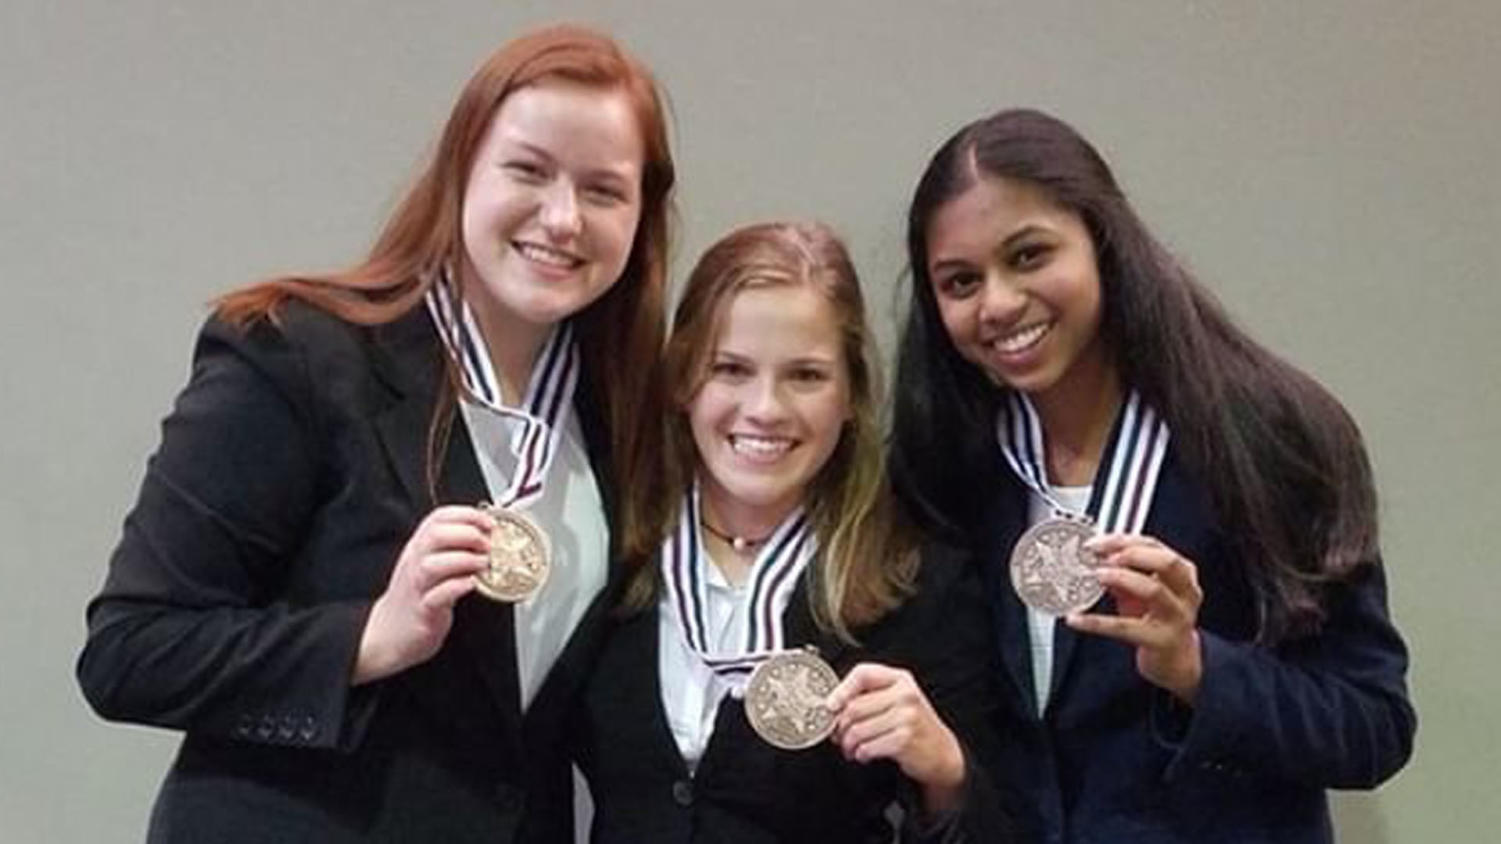 Kayla Berry, Kelley Sinning and Neha Bollam placed third at the HOSA National Leadership Conference last year. They are part of the group helping to reschedule and organize the HOSA Med Talks after cancellation on Jan. 12.